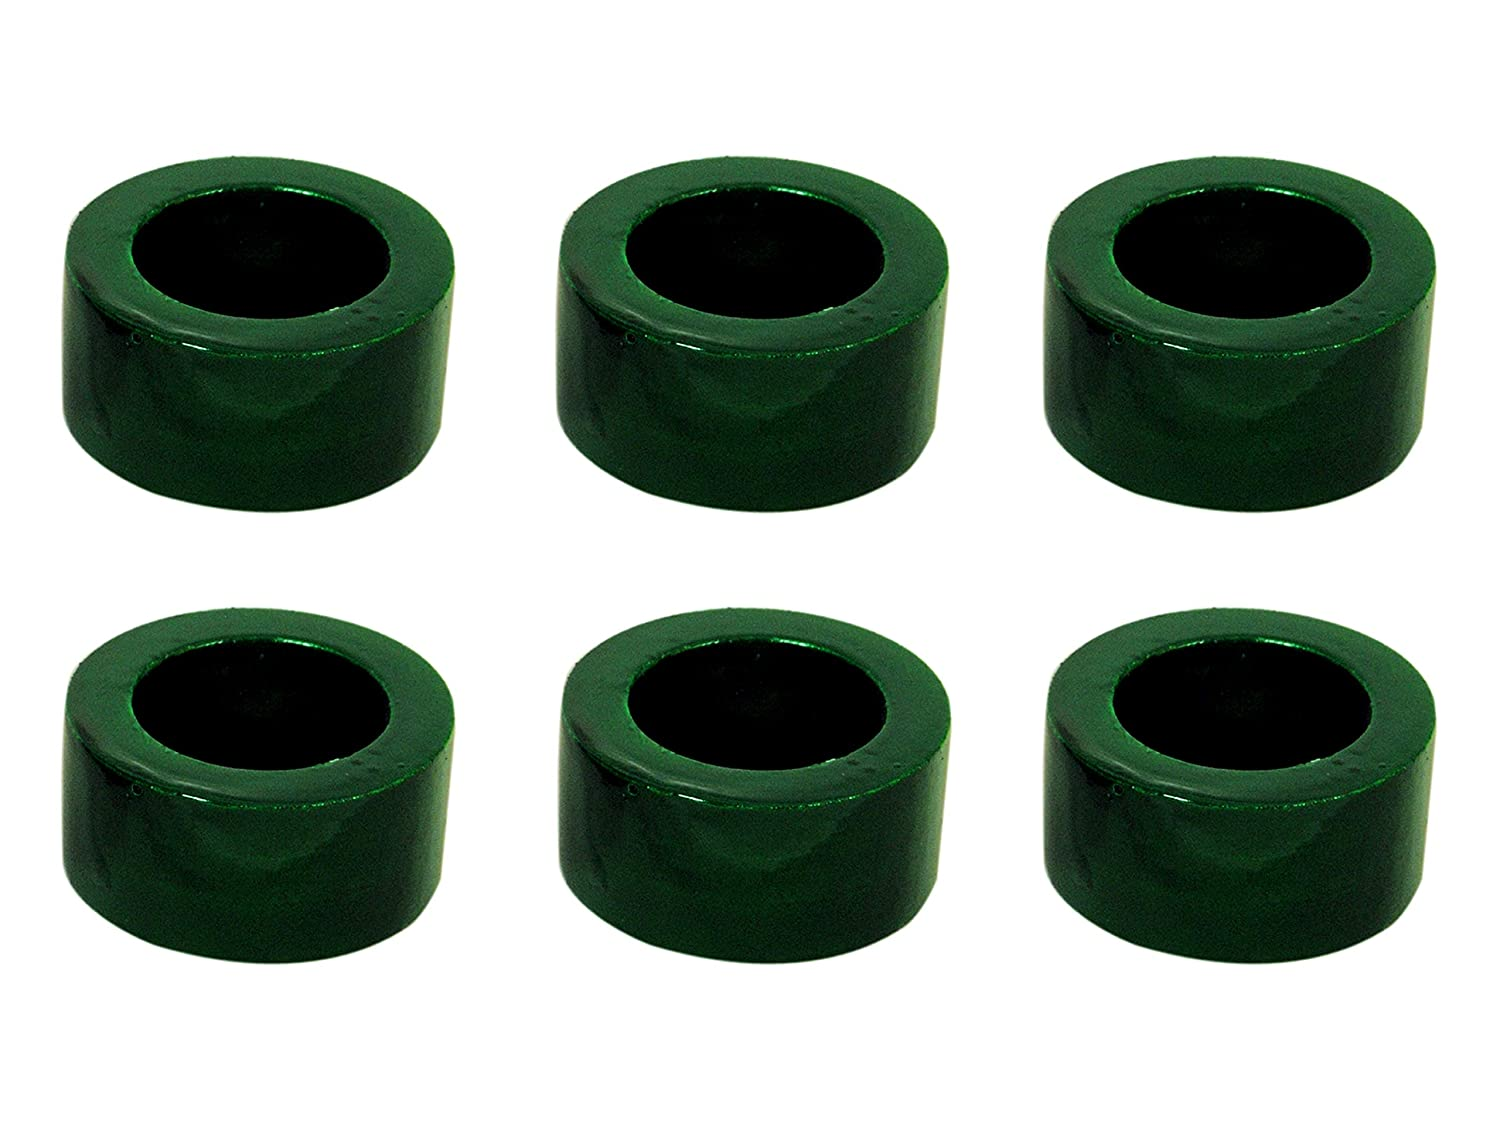 Green, Pack of 12 Worldexplorer Handcrafted Colorful Wooden Napkin Rings Set of 12 for Table Dinner Decoration